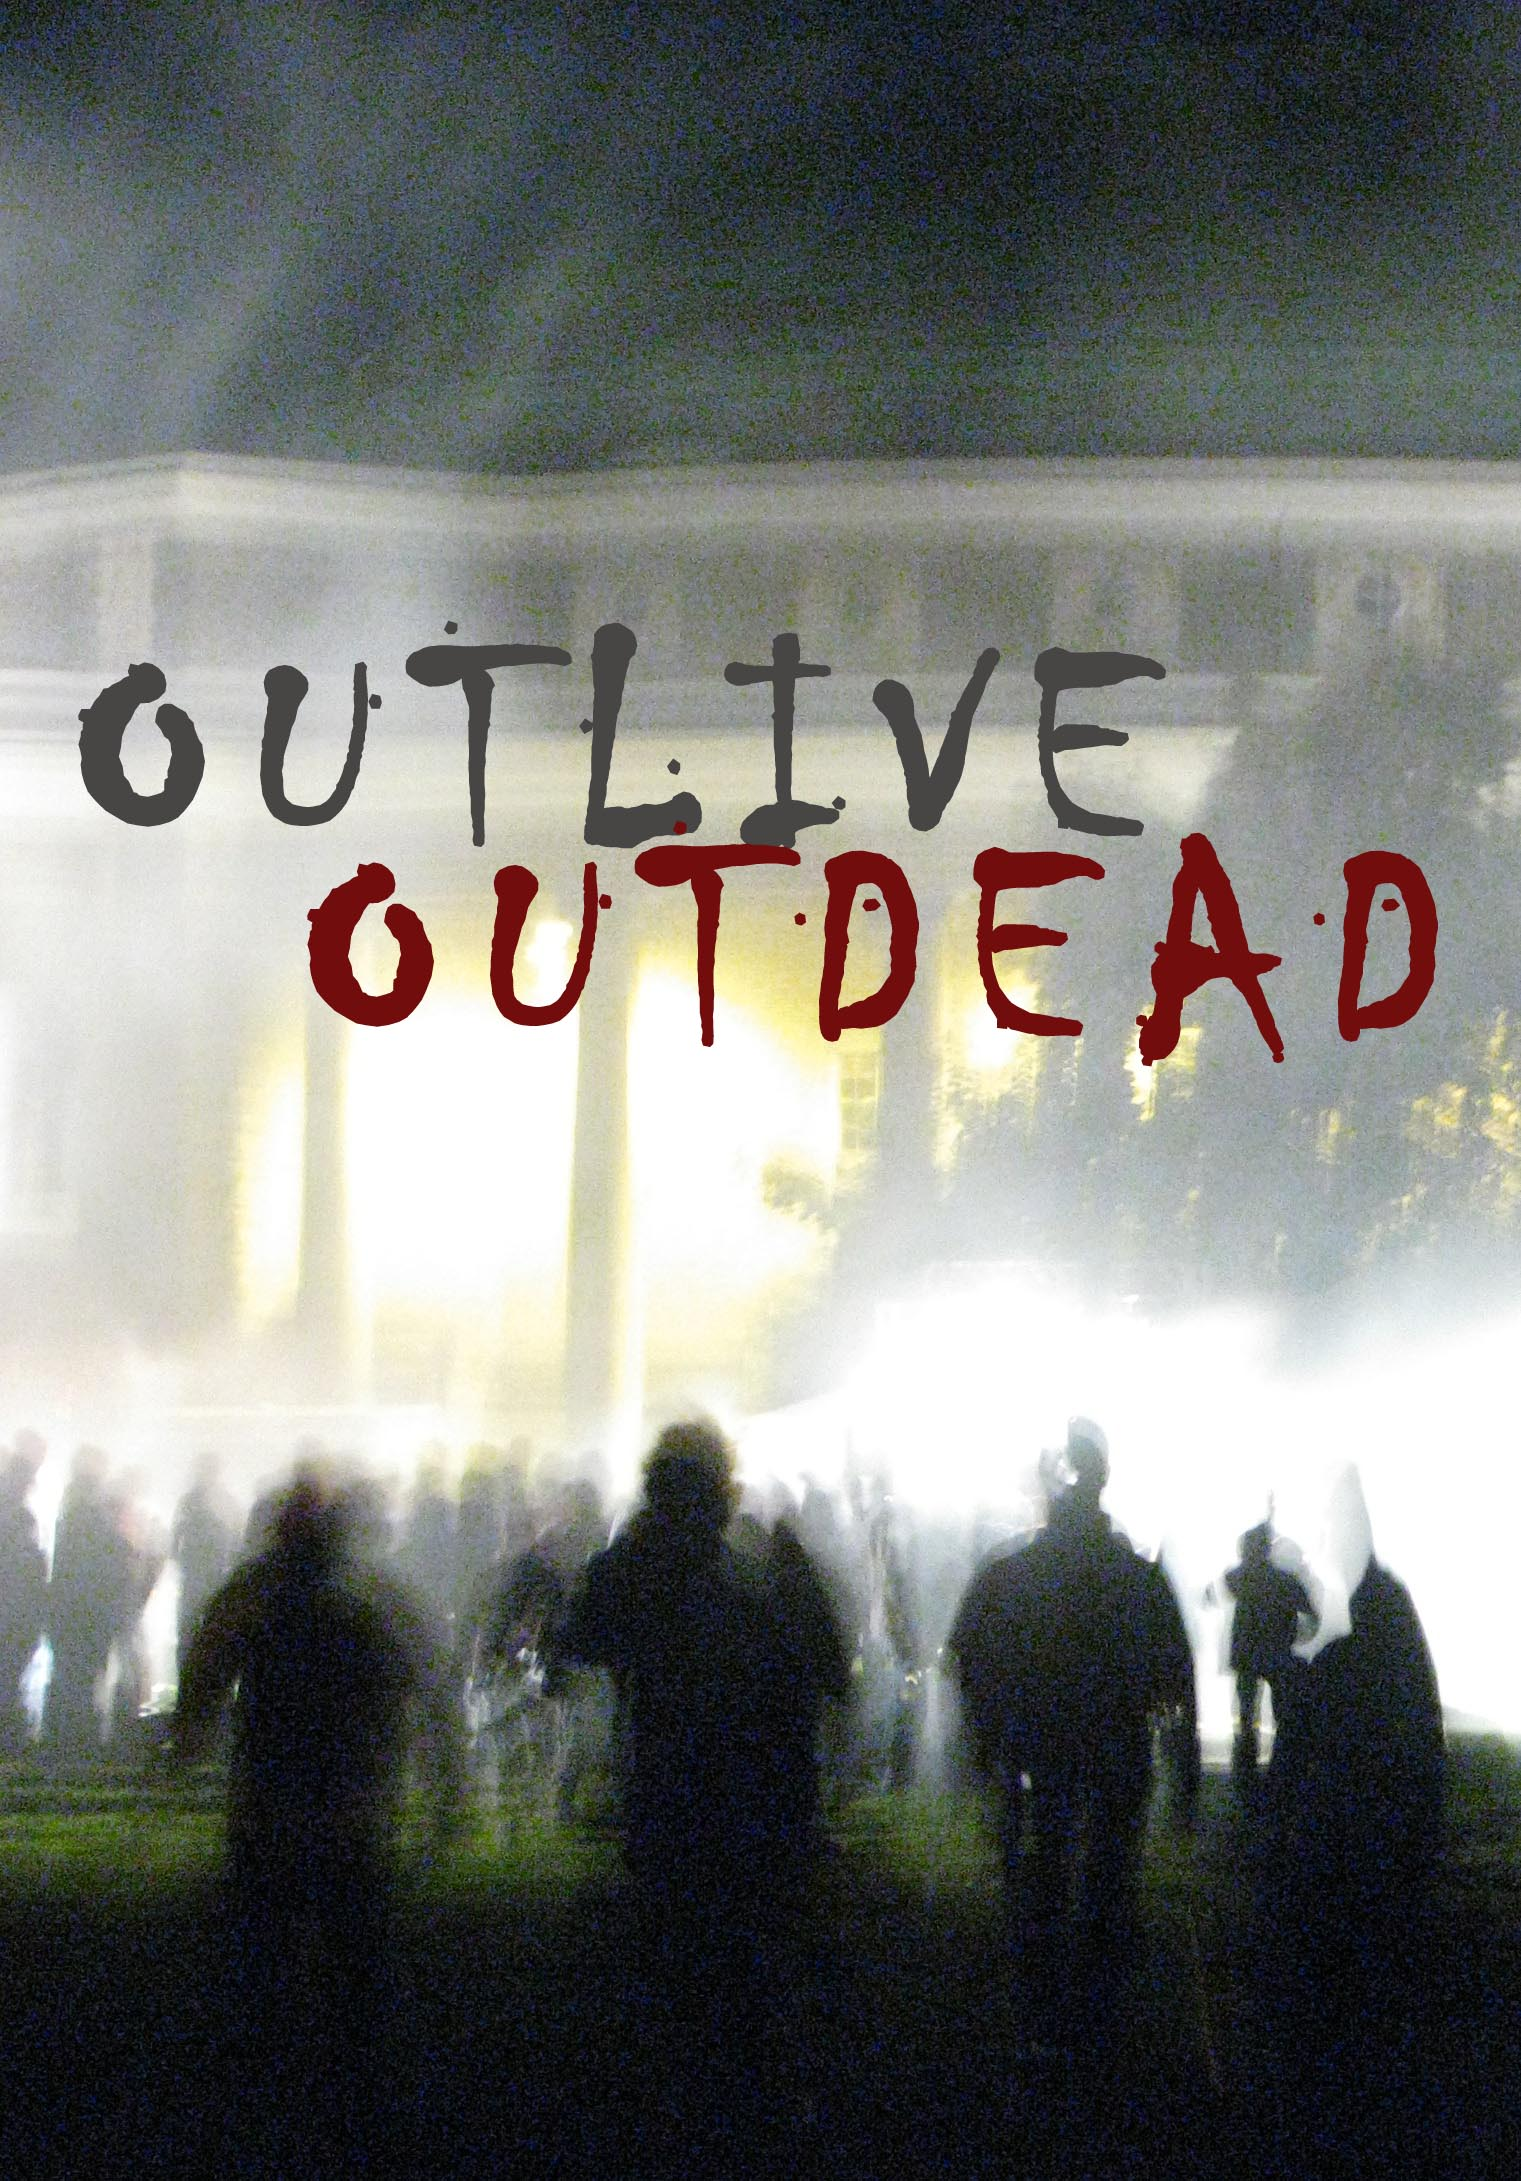 OutliveOutdead